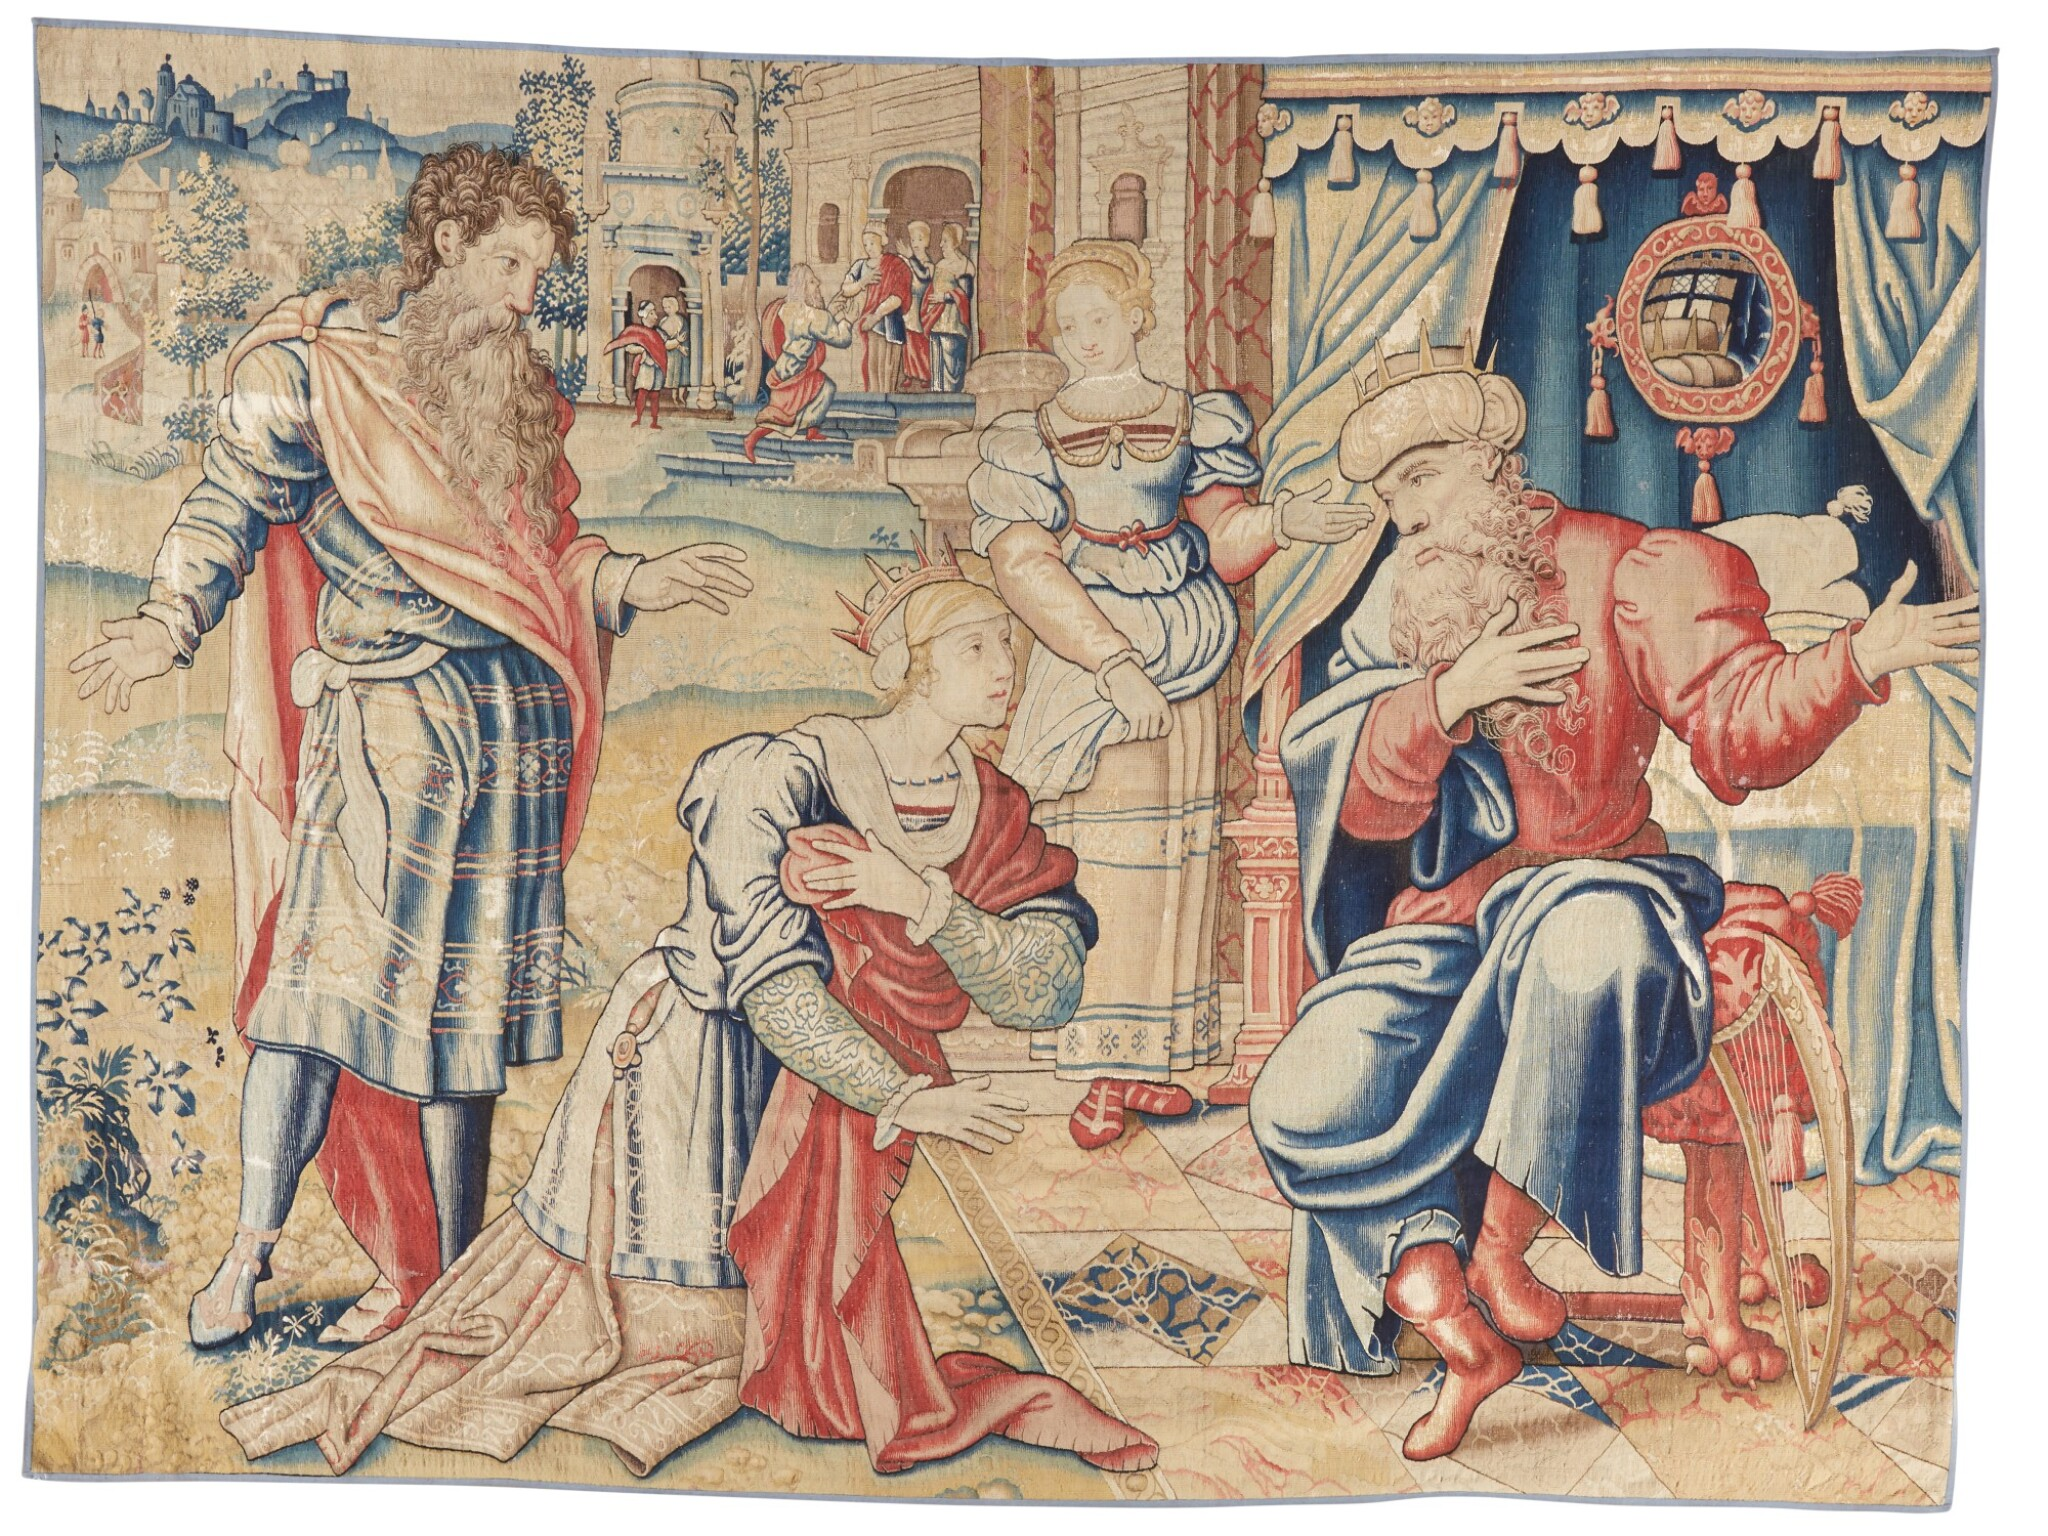 View full screen - View 1 of Lot 4. A Flemish classical narrative tapestry, possibly from the Story of David, Brussels, first quarter 16th century.